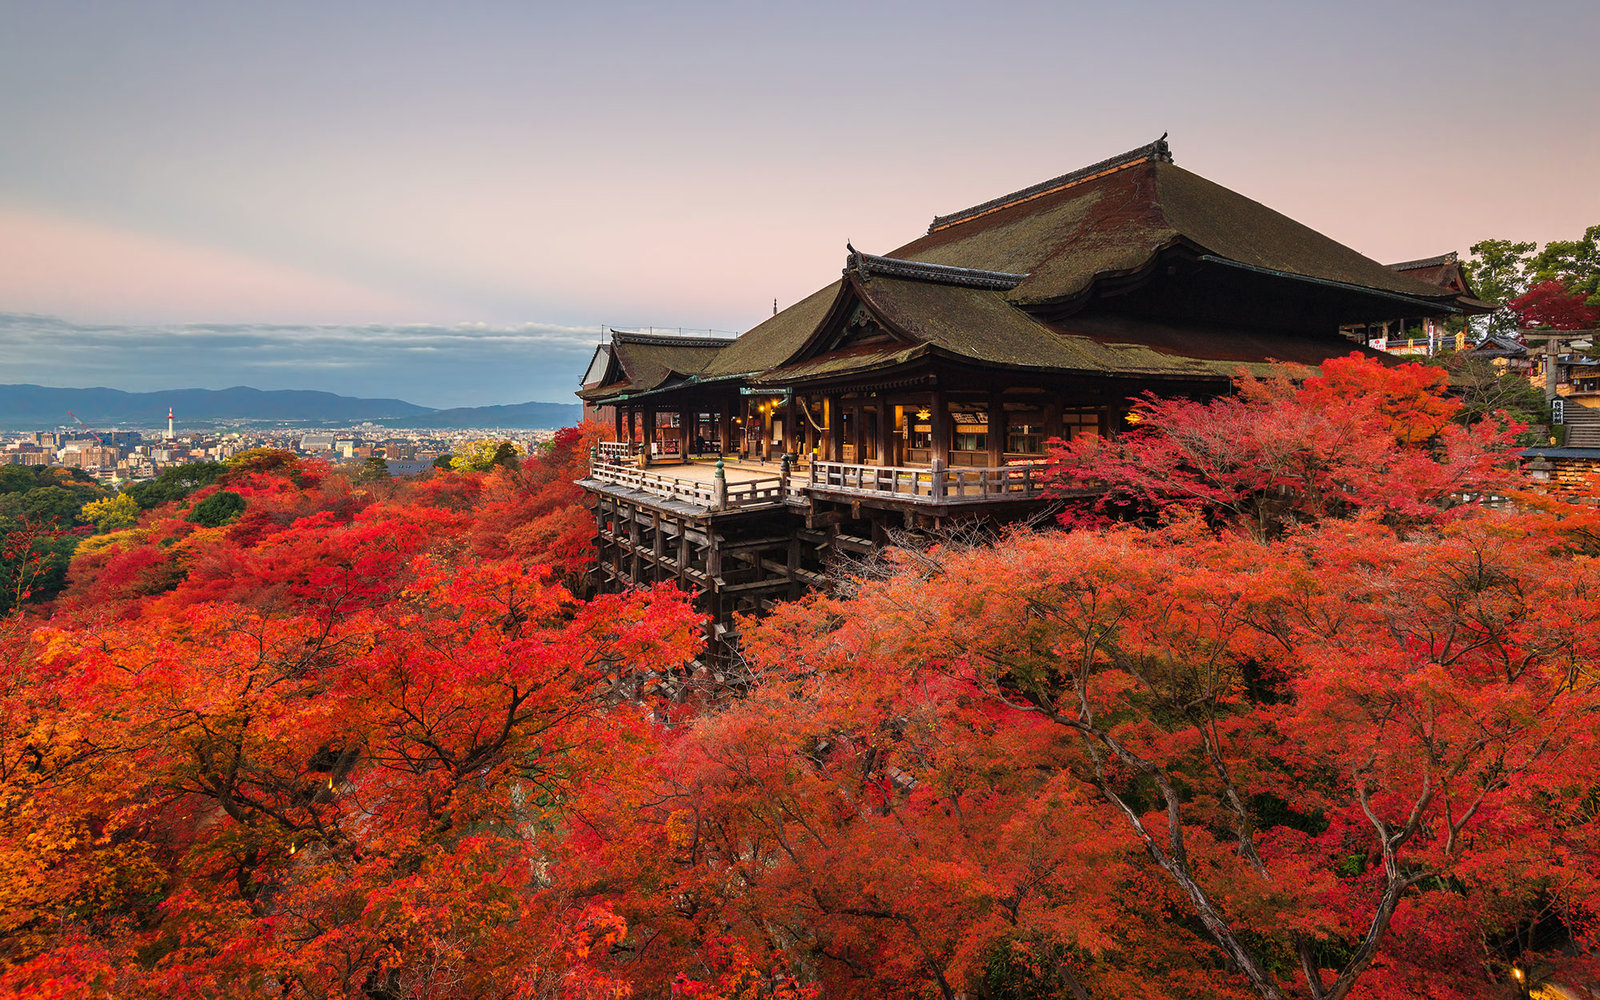 17 Stunning Temples in Japan That Will Have You Buying a Plane Ticket, Stat